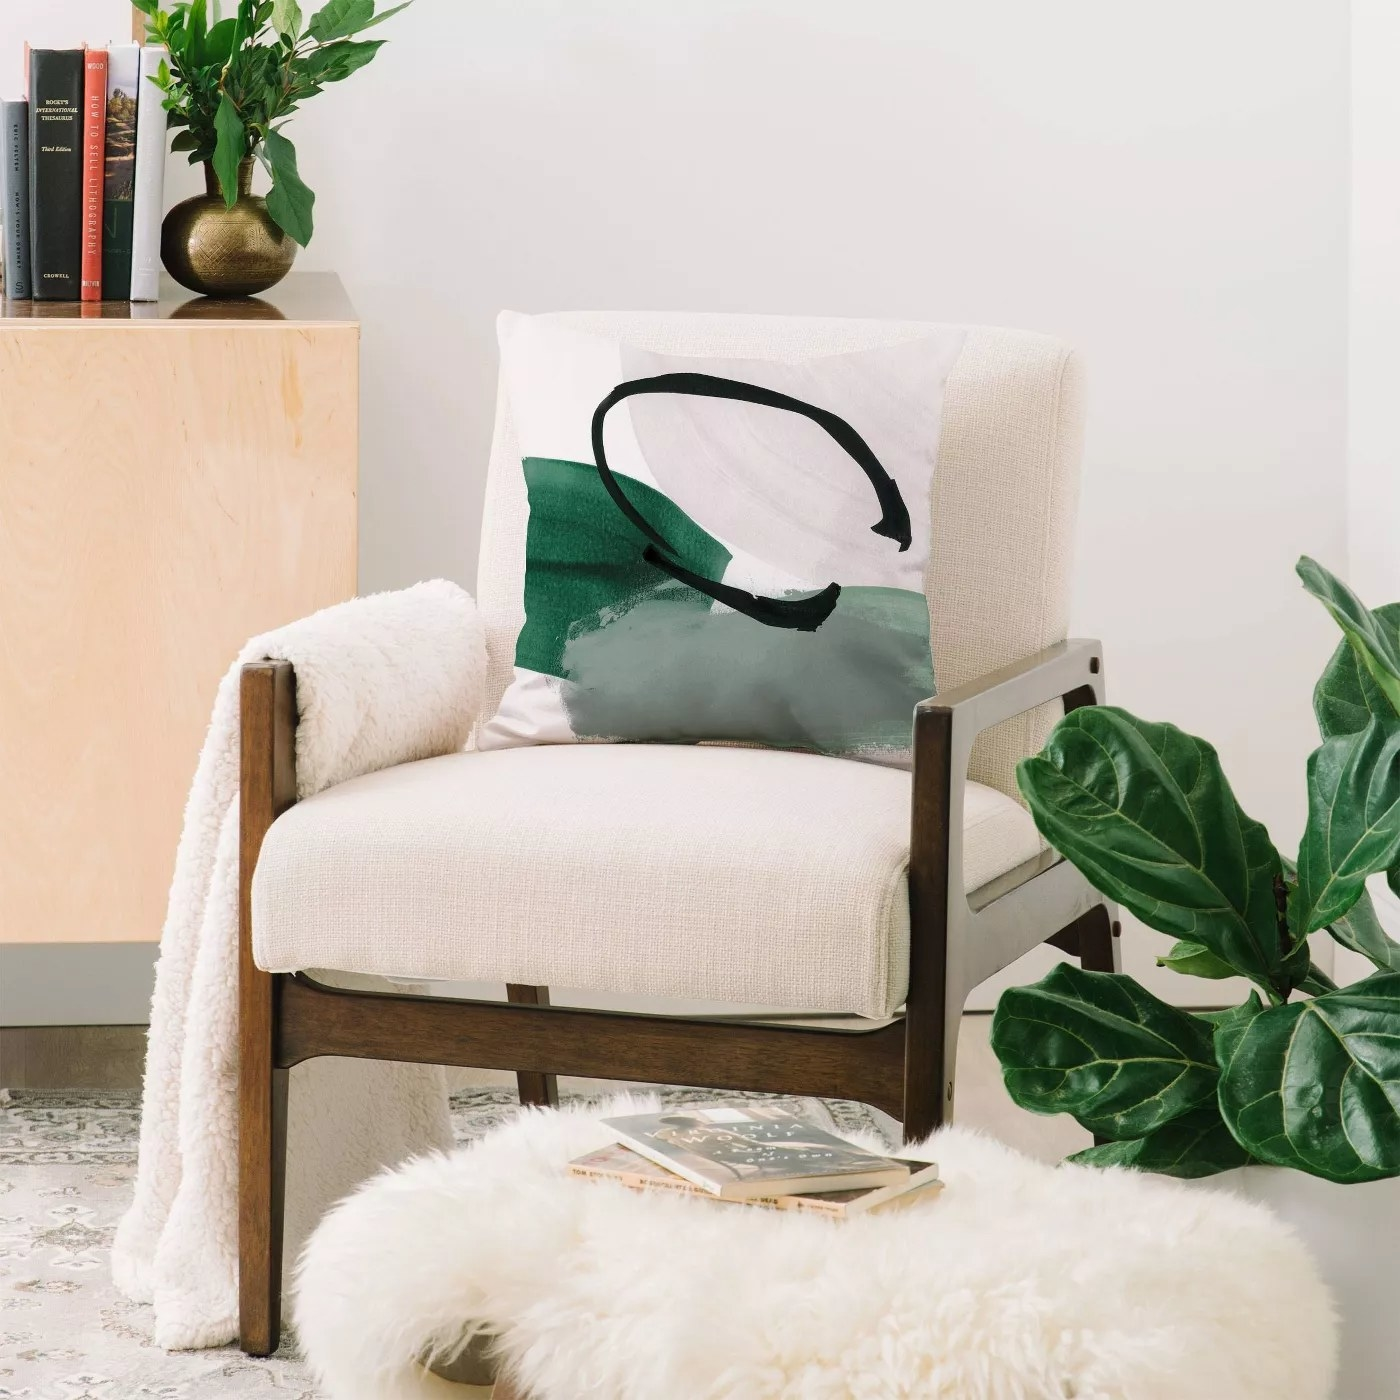 The throw pillow with a green and white paint design cover